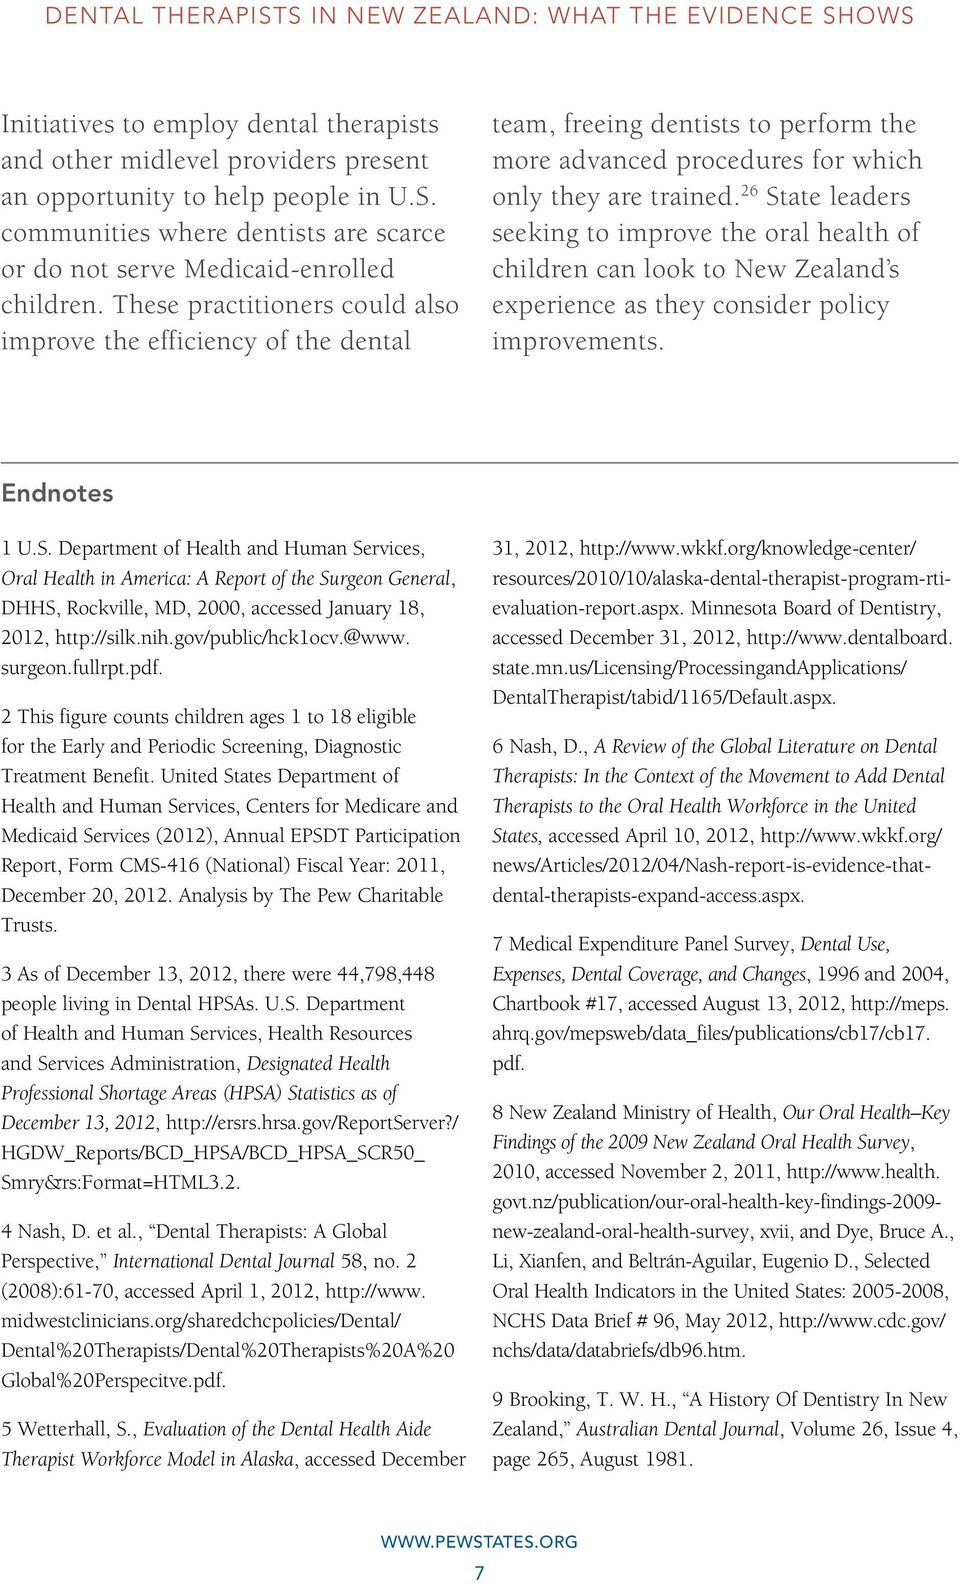 26 State leaders seeking to improve the oral health of children can look to New Zealand s experience as they consider policy improvements. Endnotes 1 U.S. Department of Health and Human Services, Oral Health in America: A Report of the Surgeon General, DHHS, Rockville, MD, 2000, accessed January 18, 2012, http://silk.